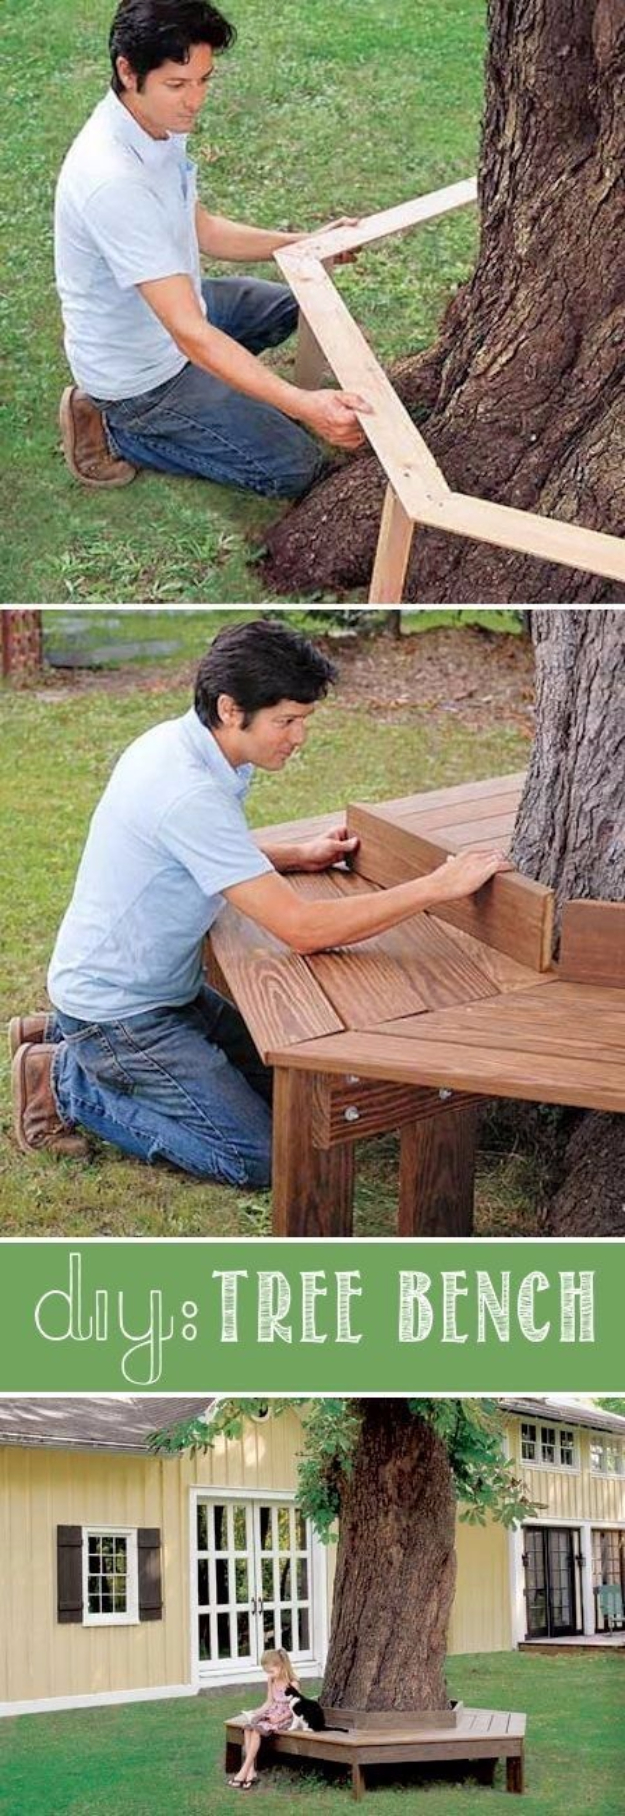 Creative Ways to Increase Curb Appeal on A Budget - Build A Tree Bench - Cheap and Easy Ideas for Upgrading Your Front Porch, Landscaping, Driveways, Garage Doors, Brick and Home Exteriors. Add Window Boxes, House Numbers